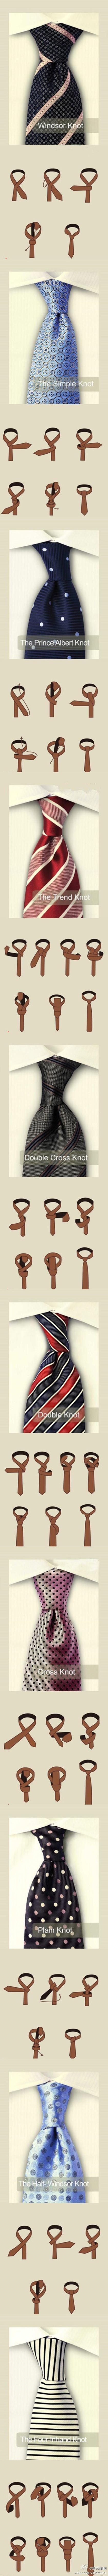 10 unique tips on how to tie your tie